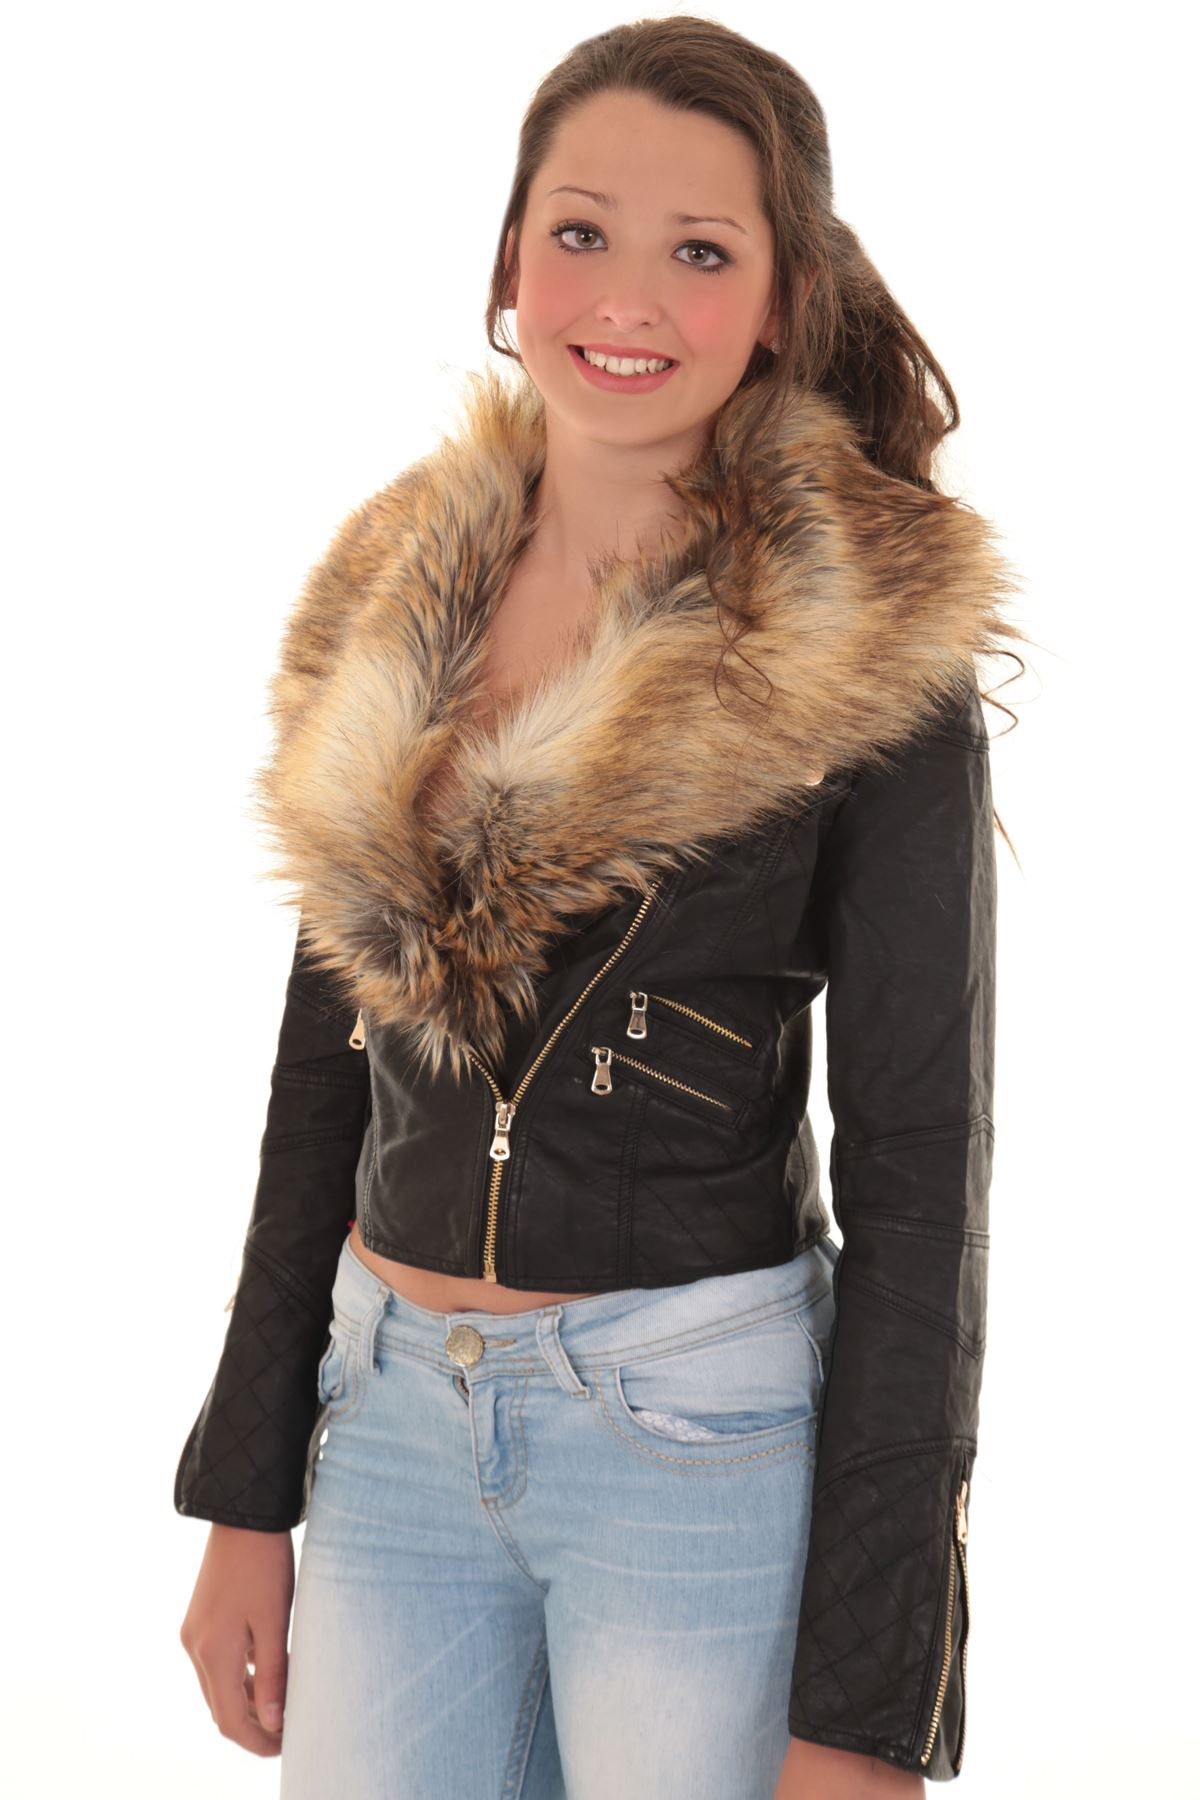 Leather Jacket With Fur Collar For Women - Coat Nj